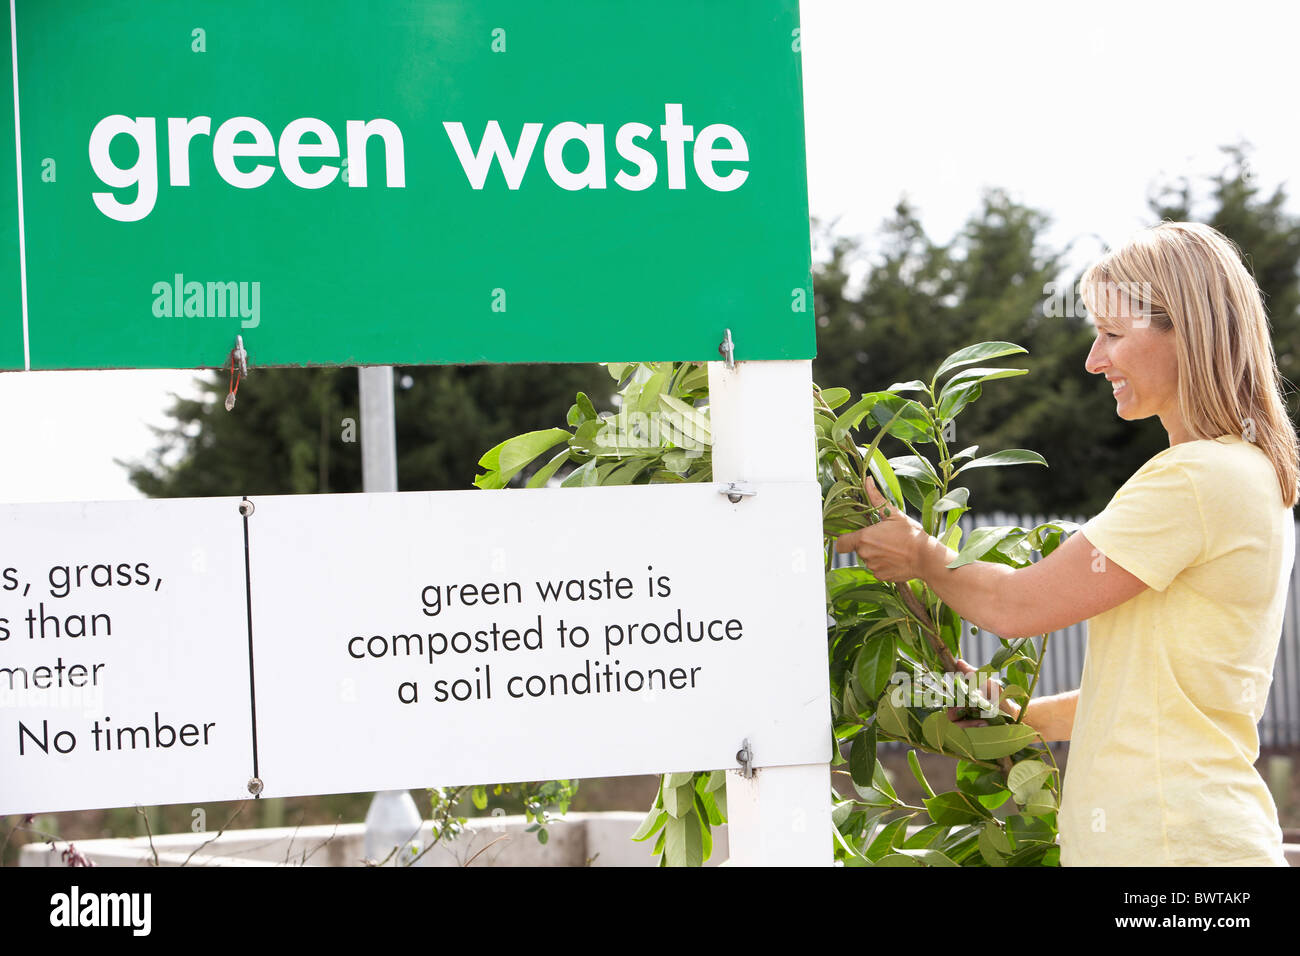 Man At Recycling Centre Disposing Of Garden Waste - Stock Image